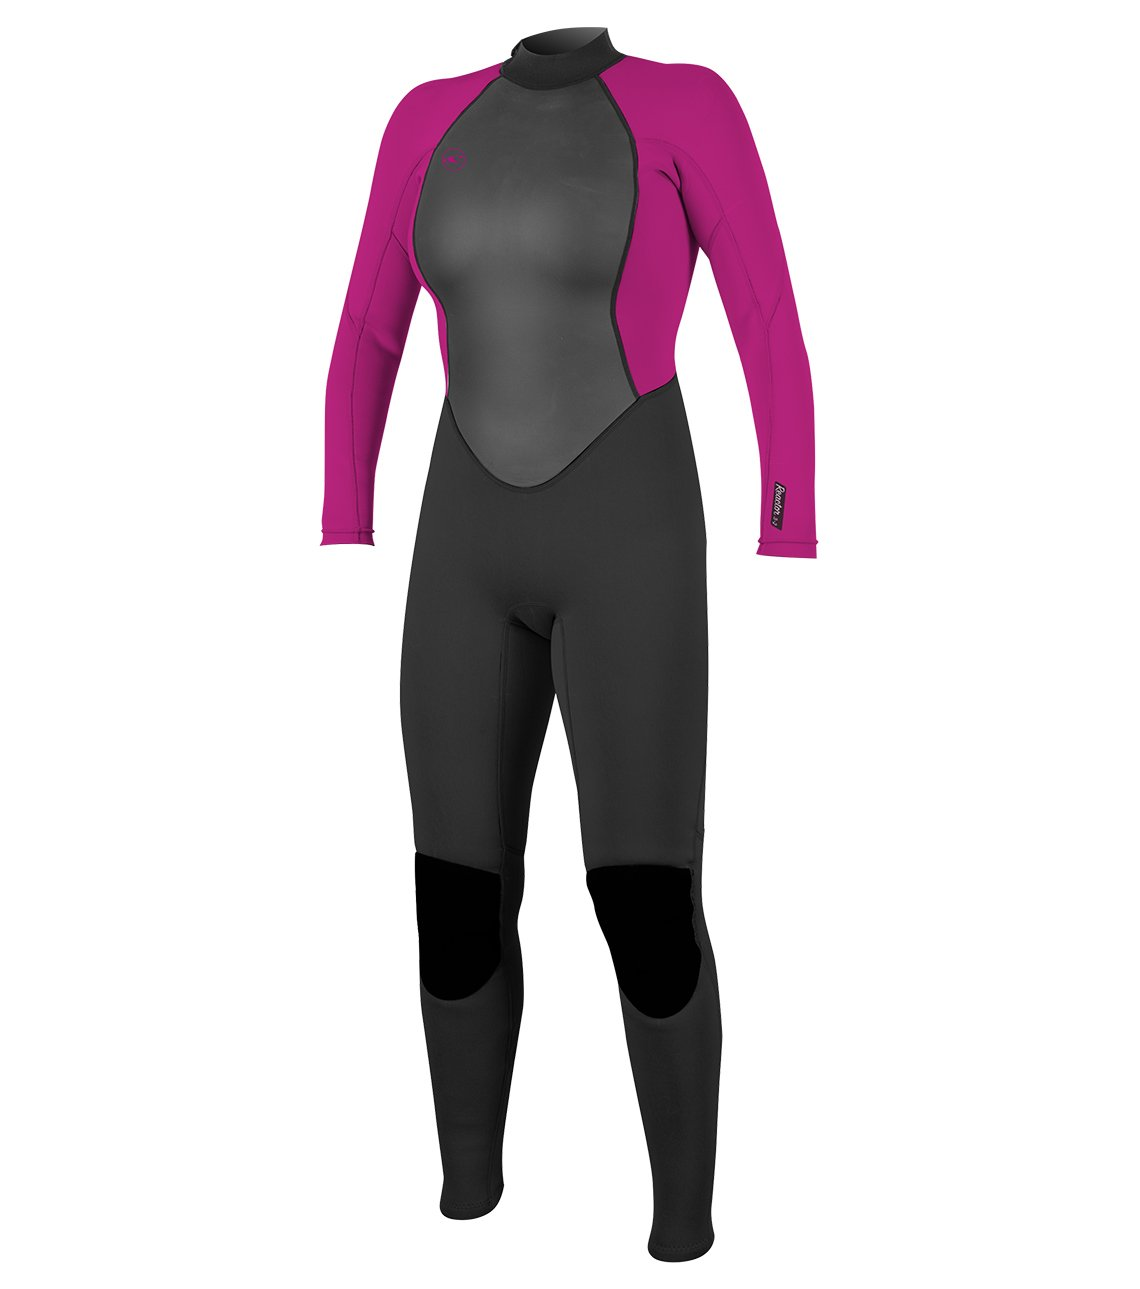 O'Neill Women's Reactor-2 3/2mm Back Zip Full Wetsuit, Black/Berry, 14 by O'Neill Wetsuits